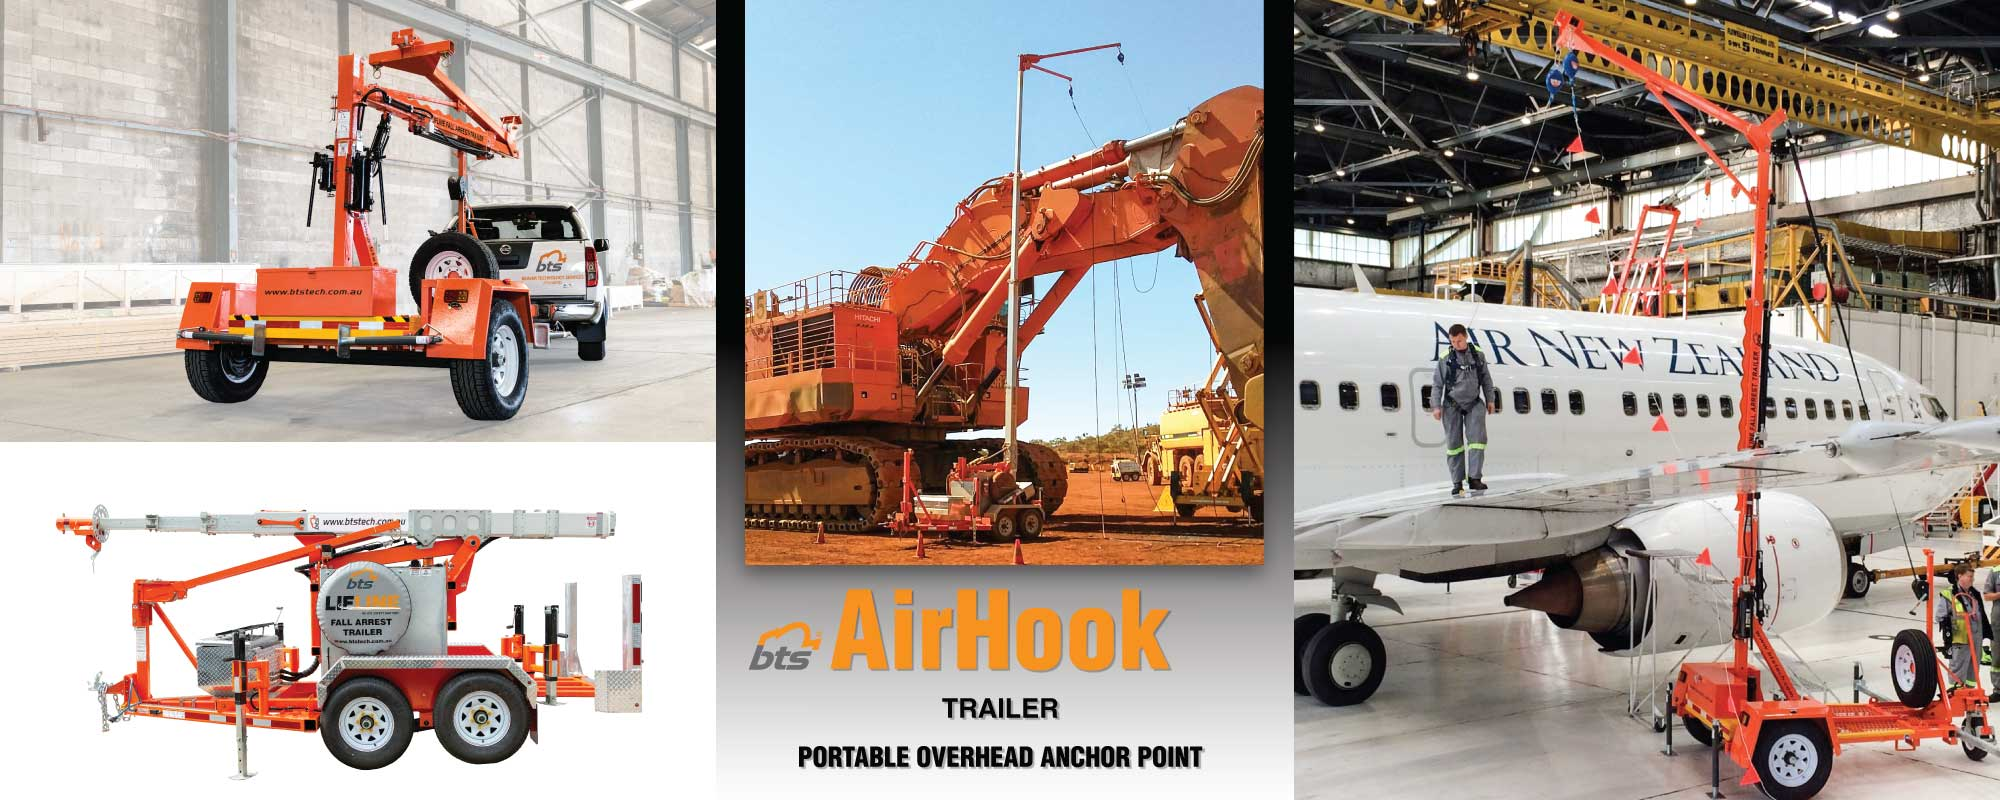 AirHook TraIlers